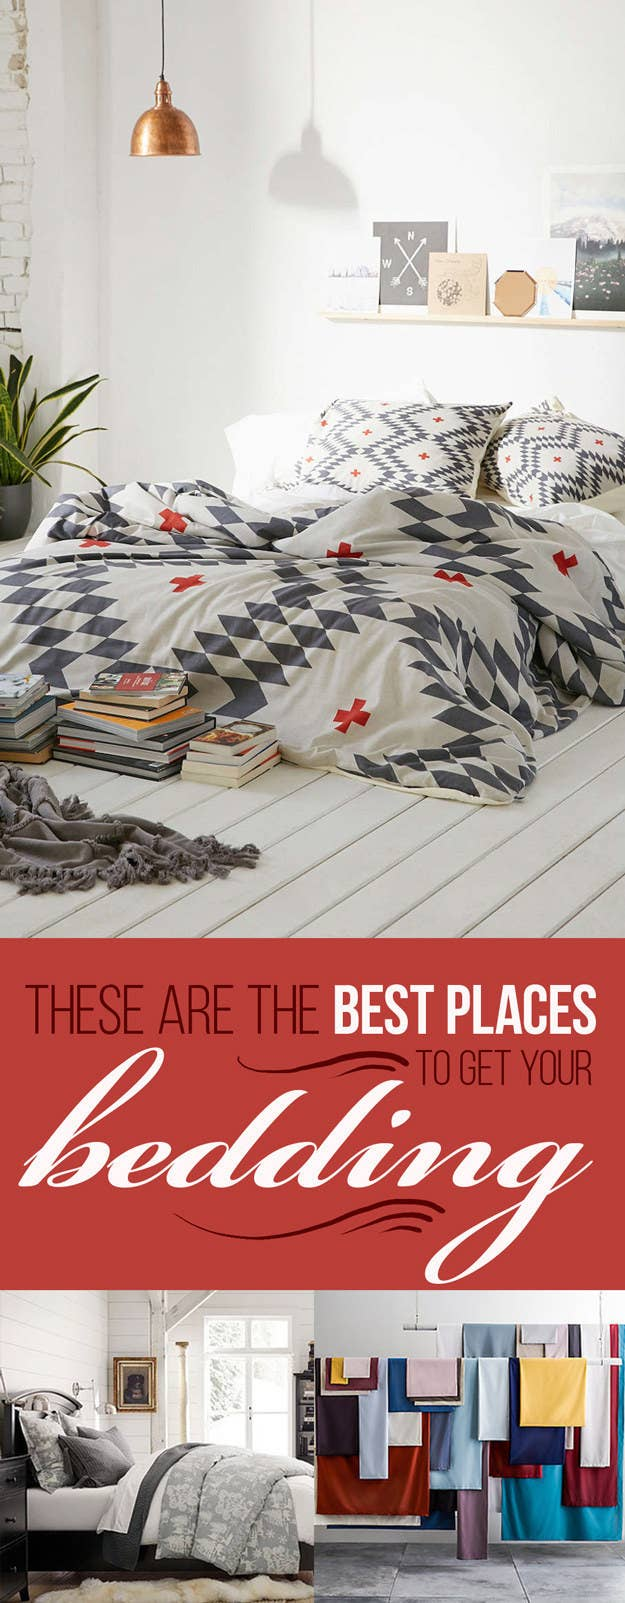 Best places to buy bedding - Share On Facebook Share